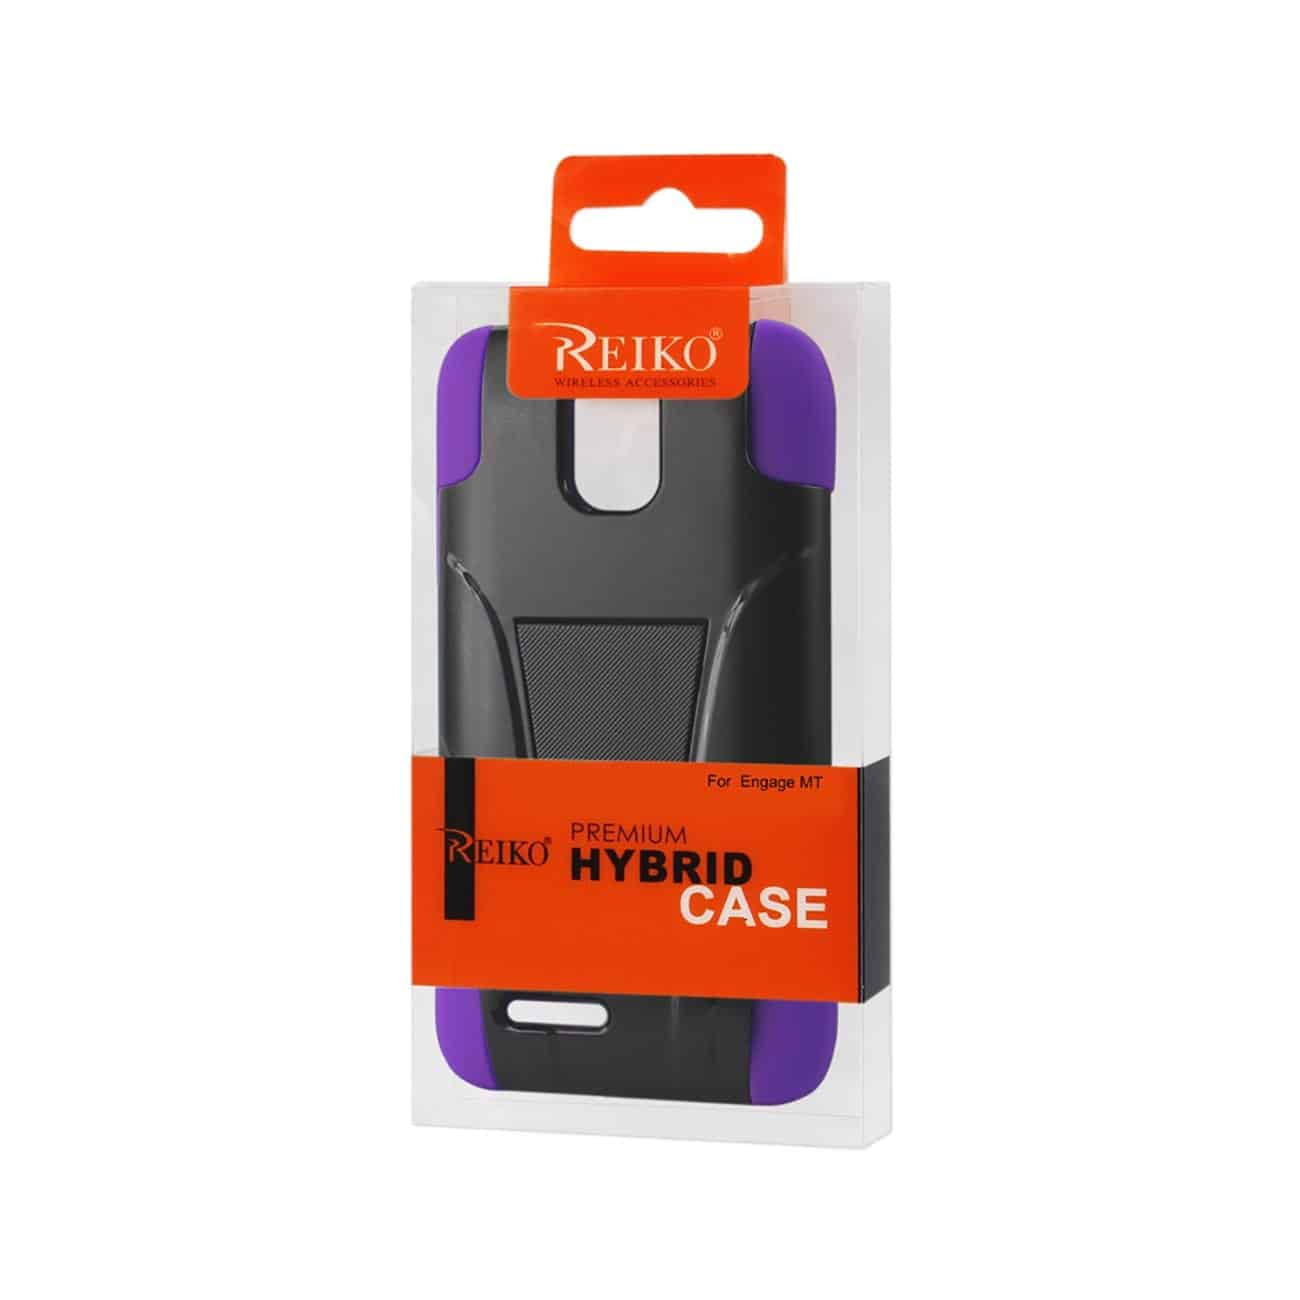 ZTE ENGAGE MT HYBRID HEAVY DUTY CASE WITH KICKSTAND IN PURPLE BLACK